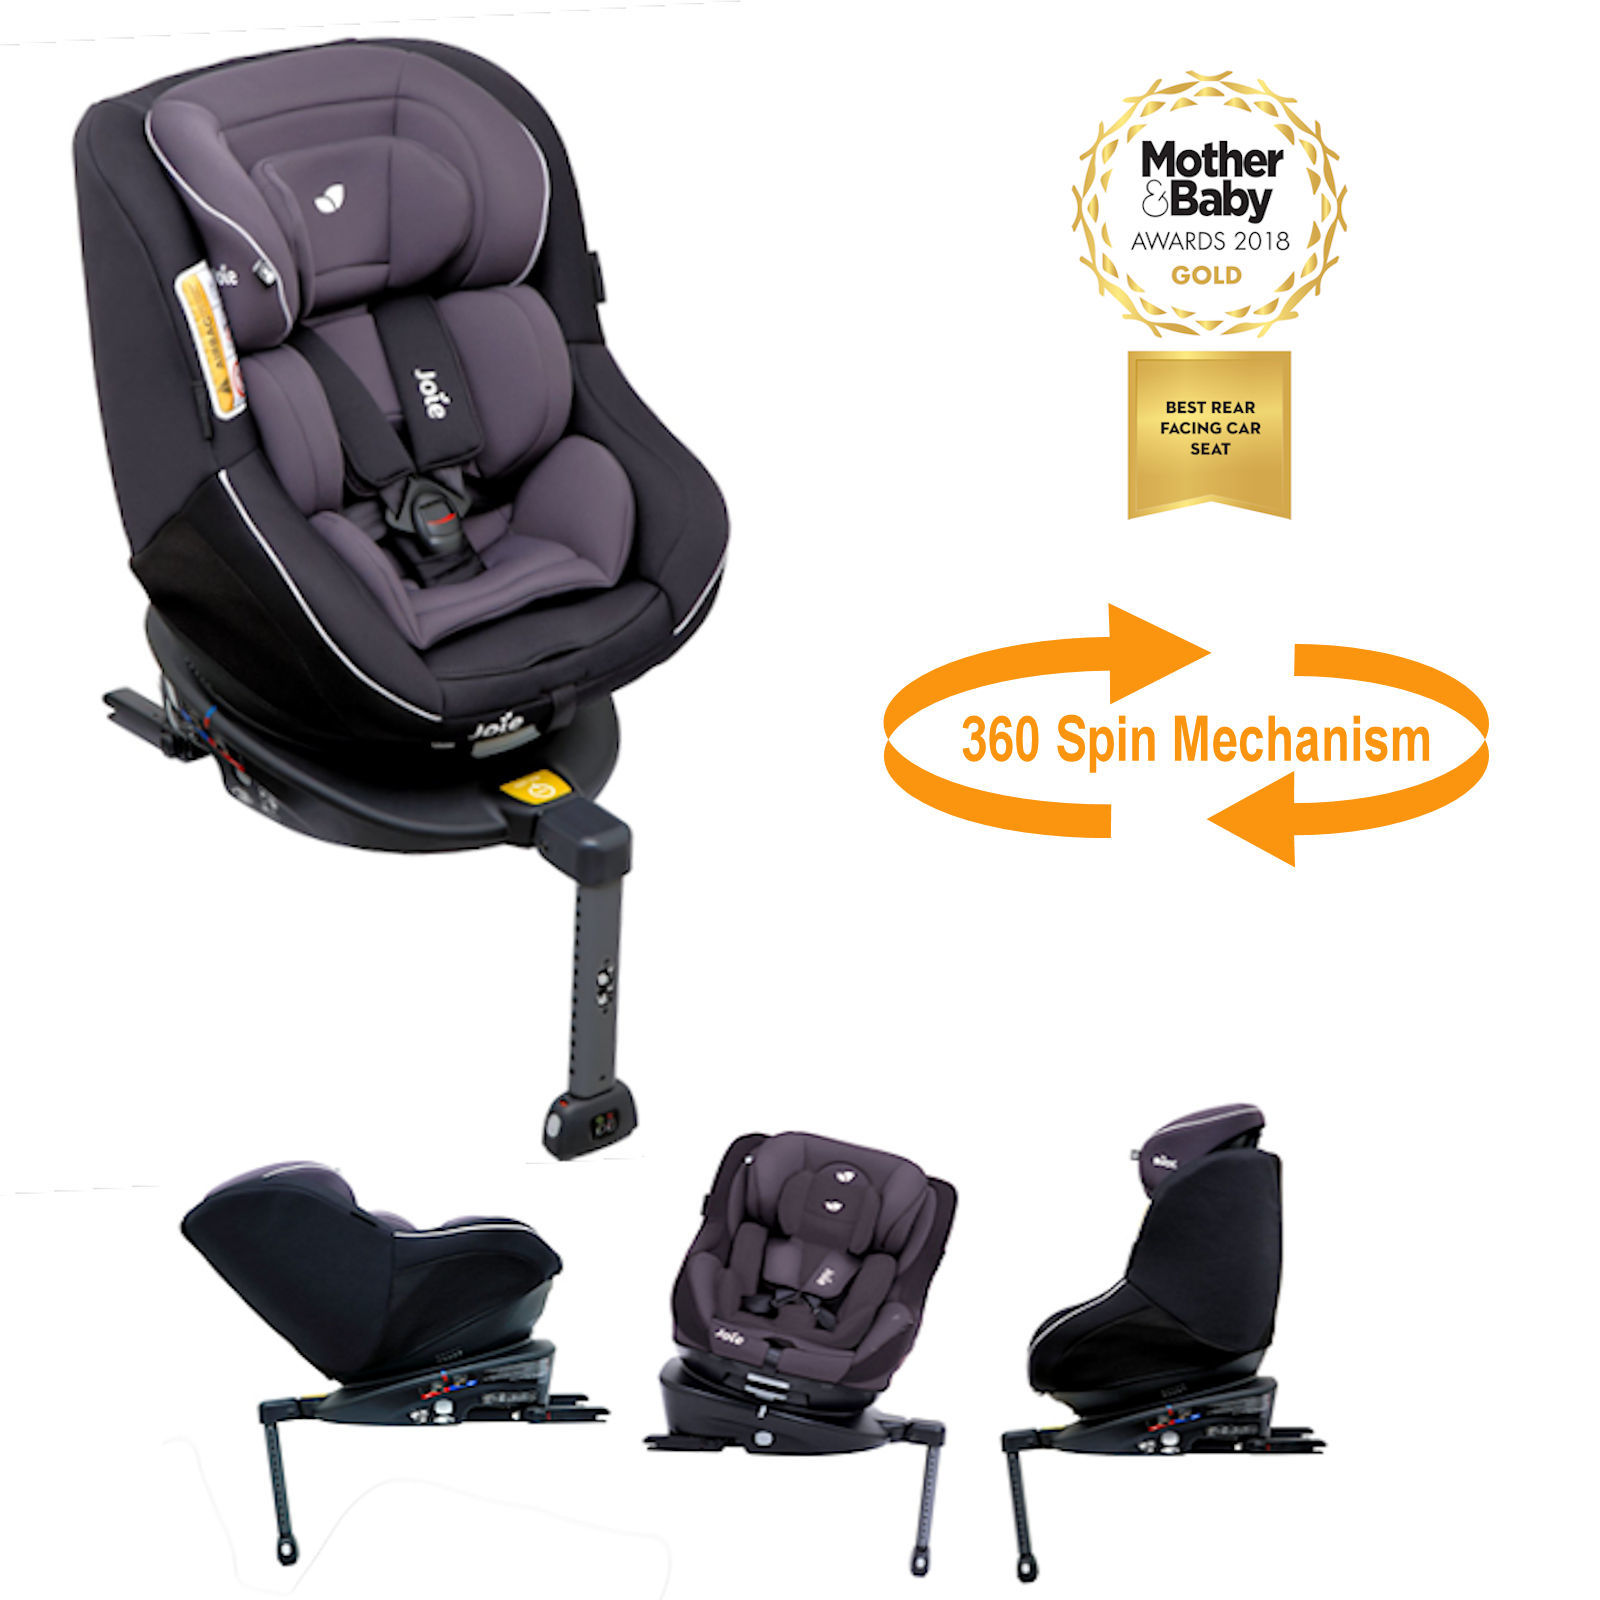 Joie Baby Head Office Qoo10 Joie Spin 360 Baby Maternity